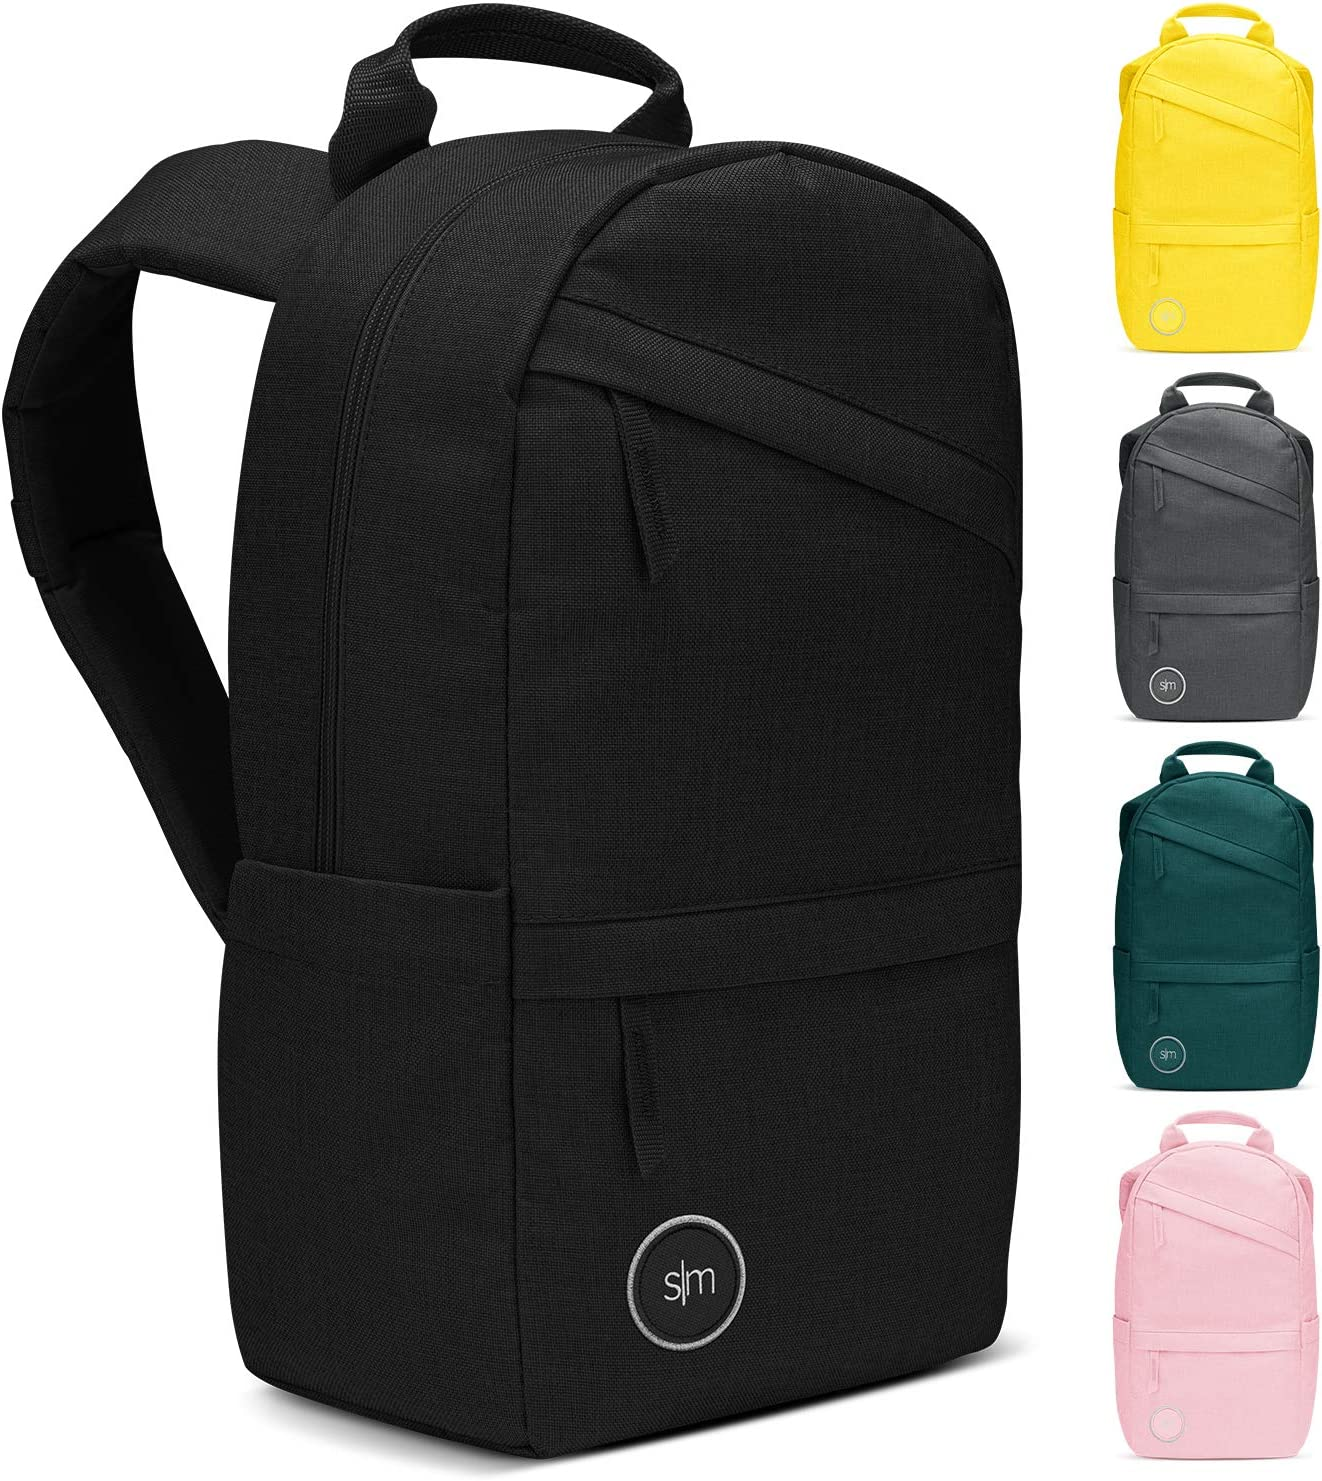 Simple OFFicial shop Modern Legacy Backpack In a popularity with for Compartment Laptop Sleeve